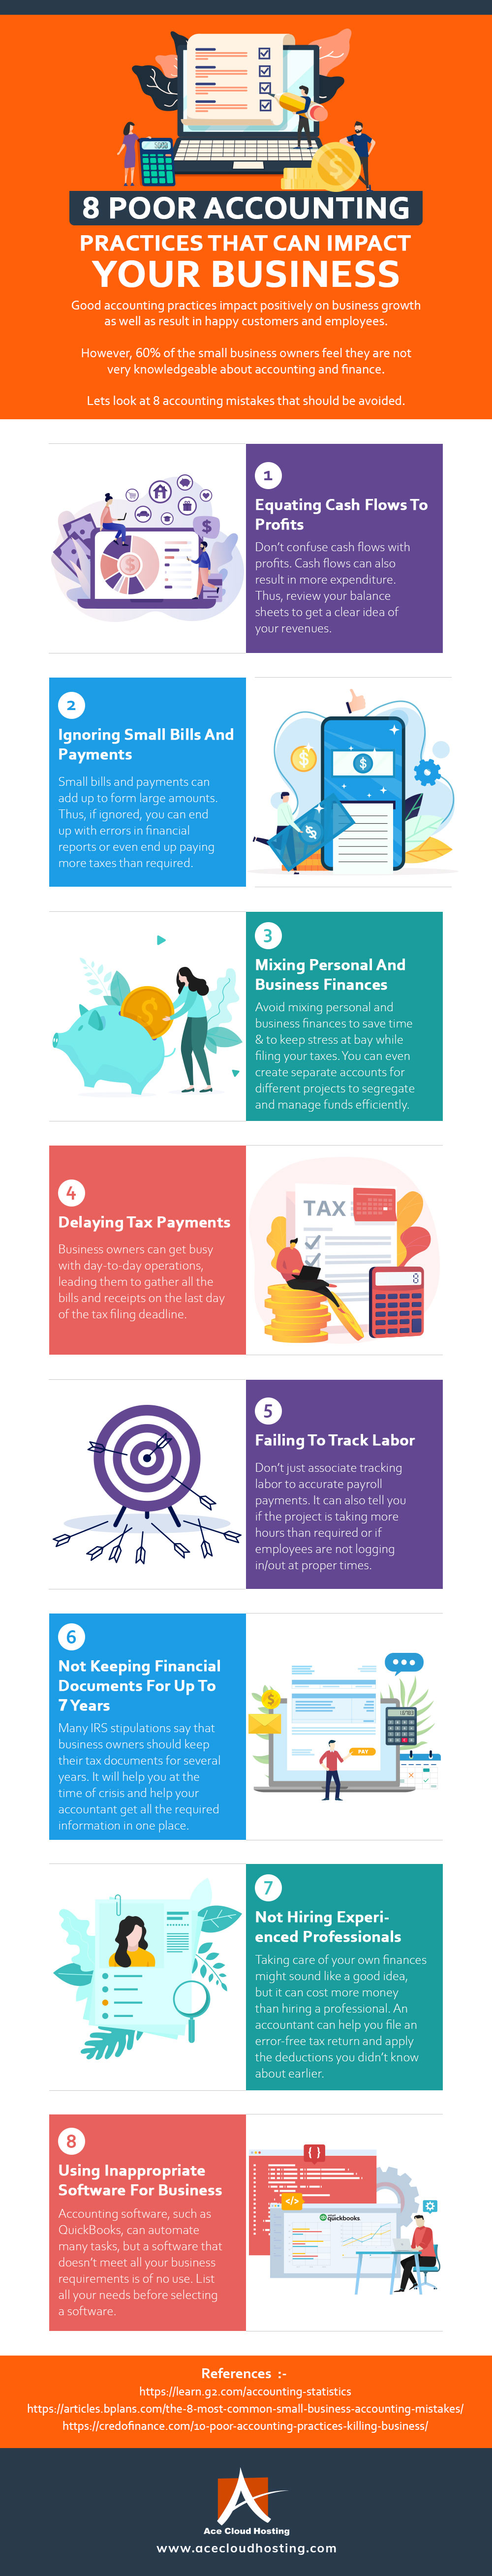 8 Poor Accounting Practices That Can Impact Your Businesses [Infographic]